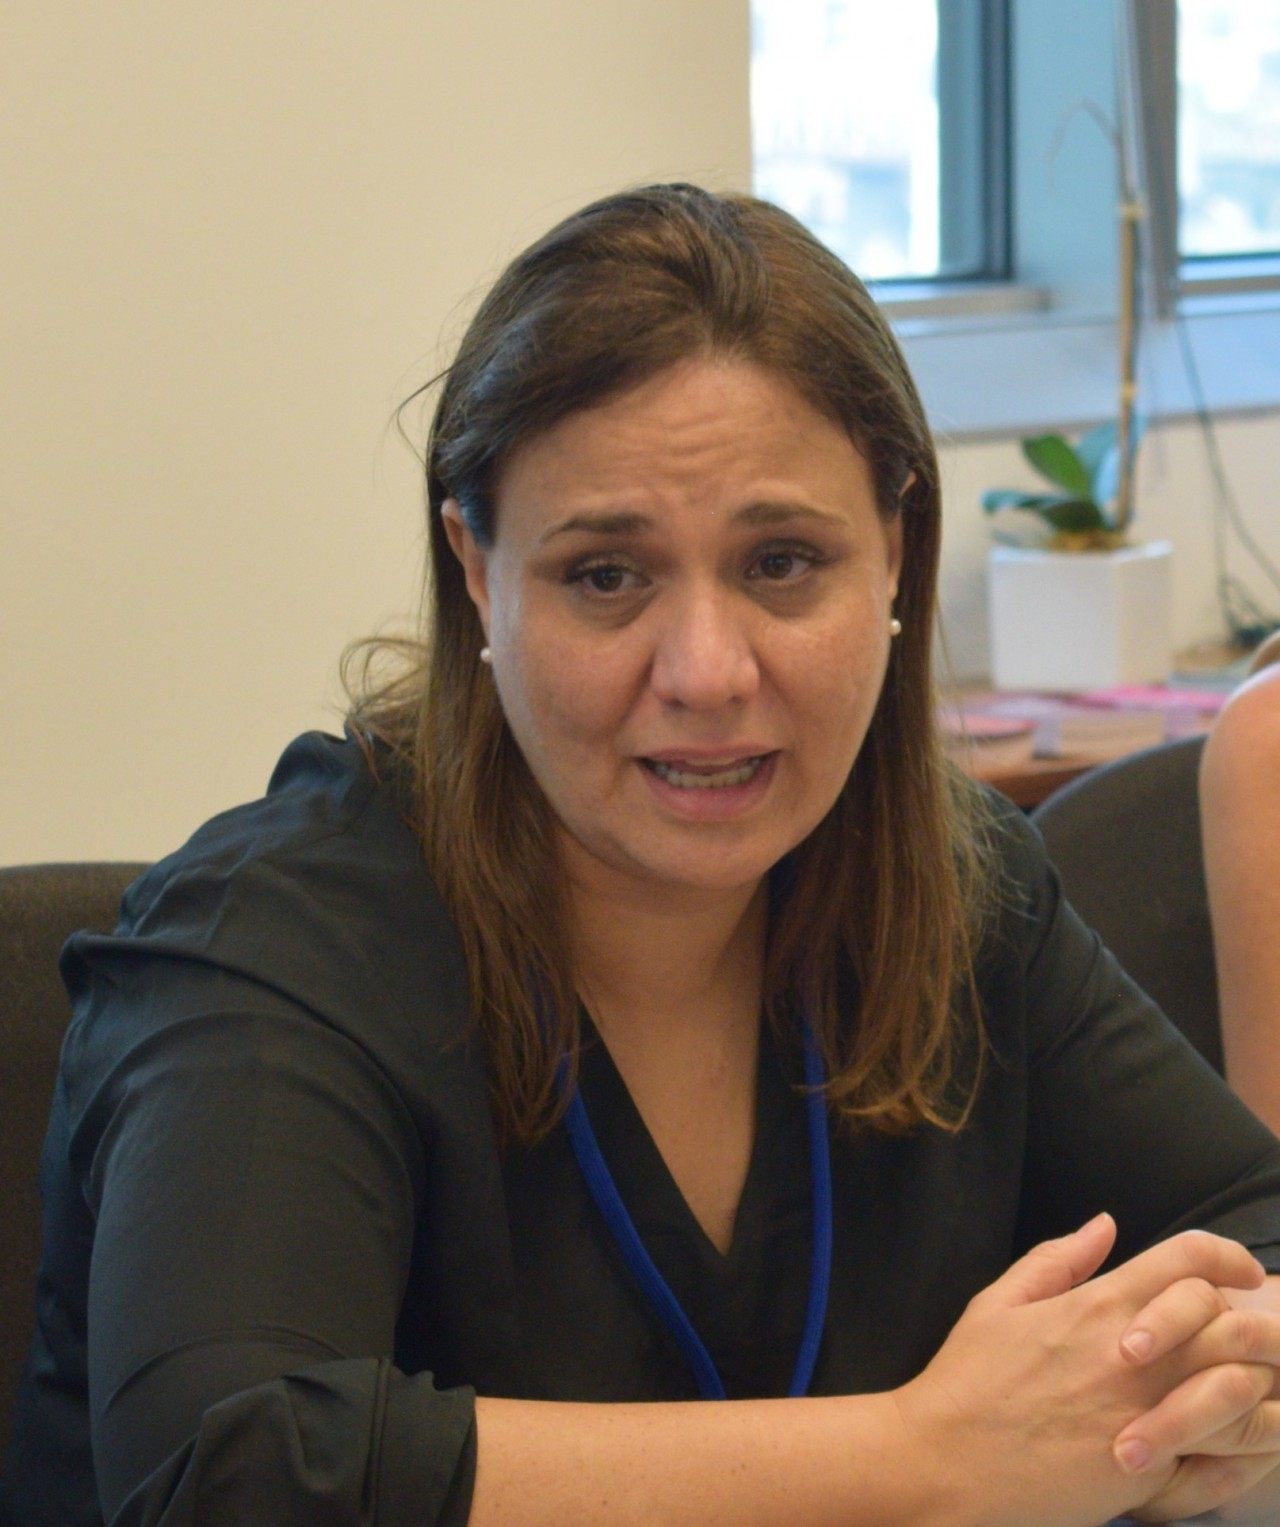 Gabriela Agosto, Executive Secretary, National Coordinating Council for Social Policies, Argentina